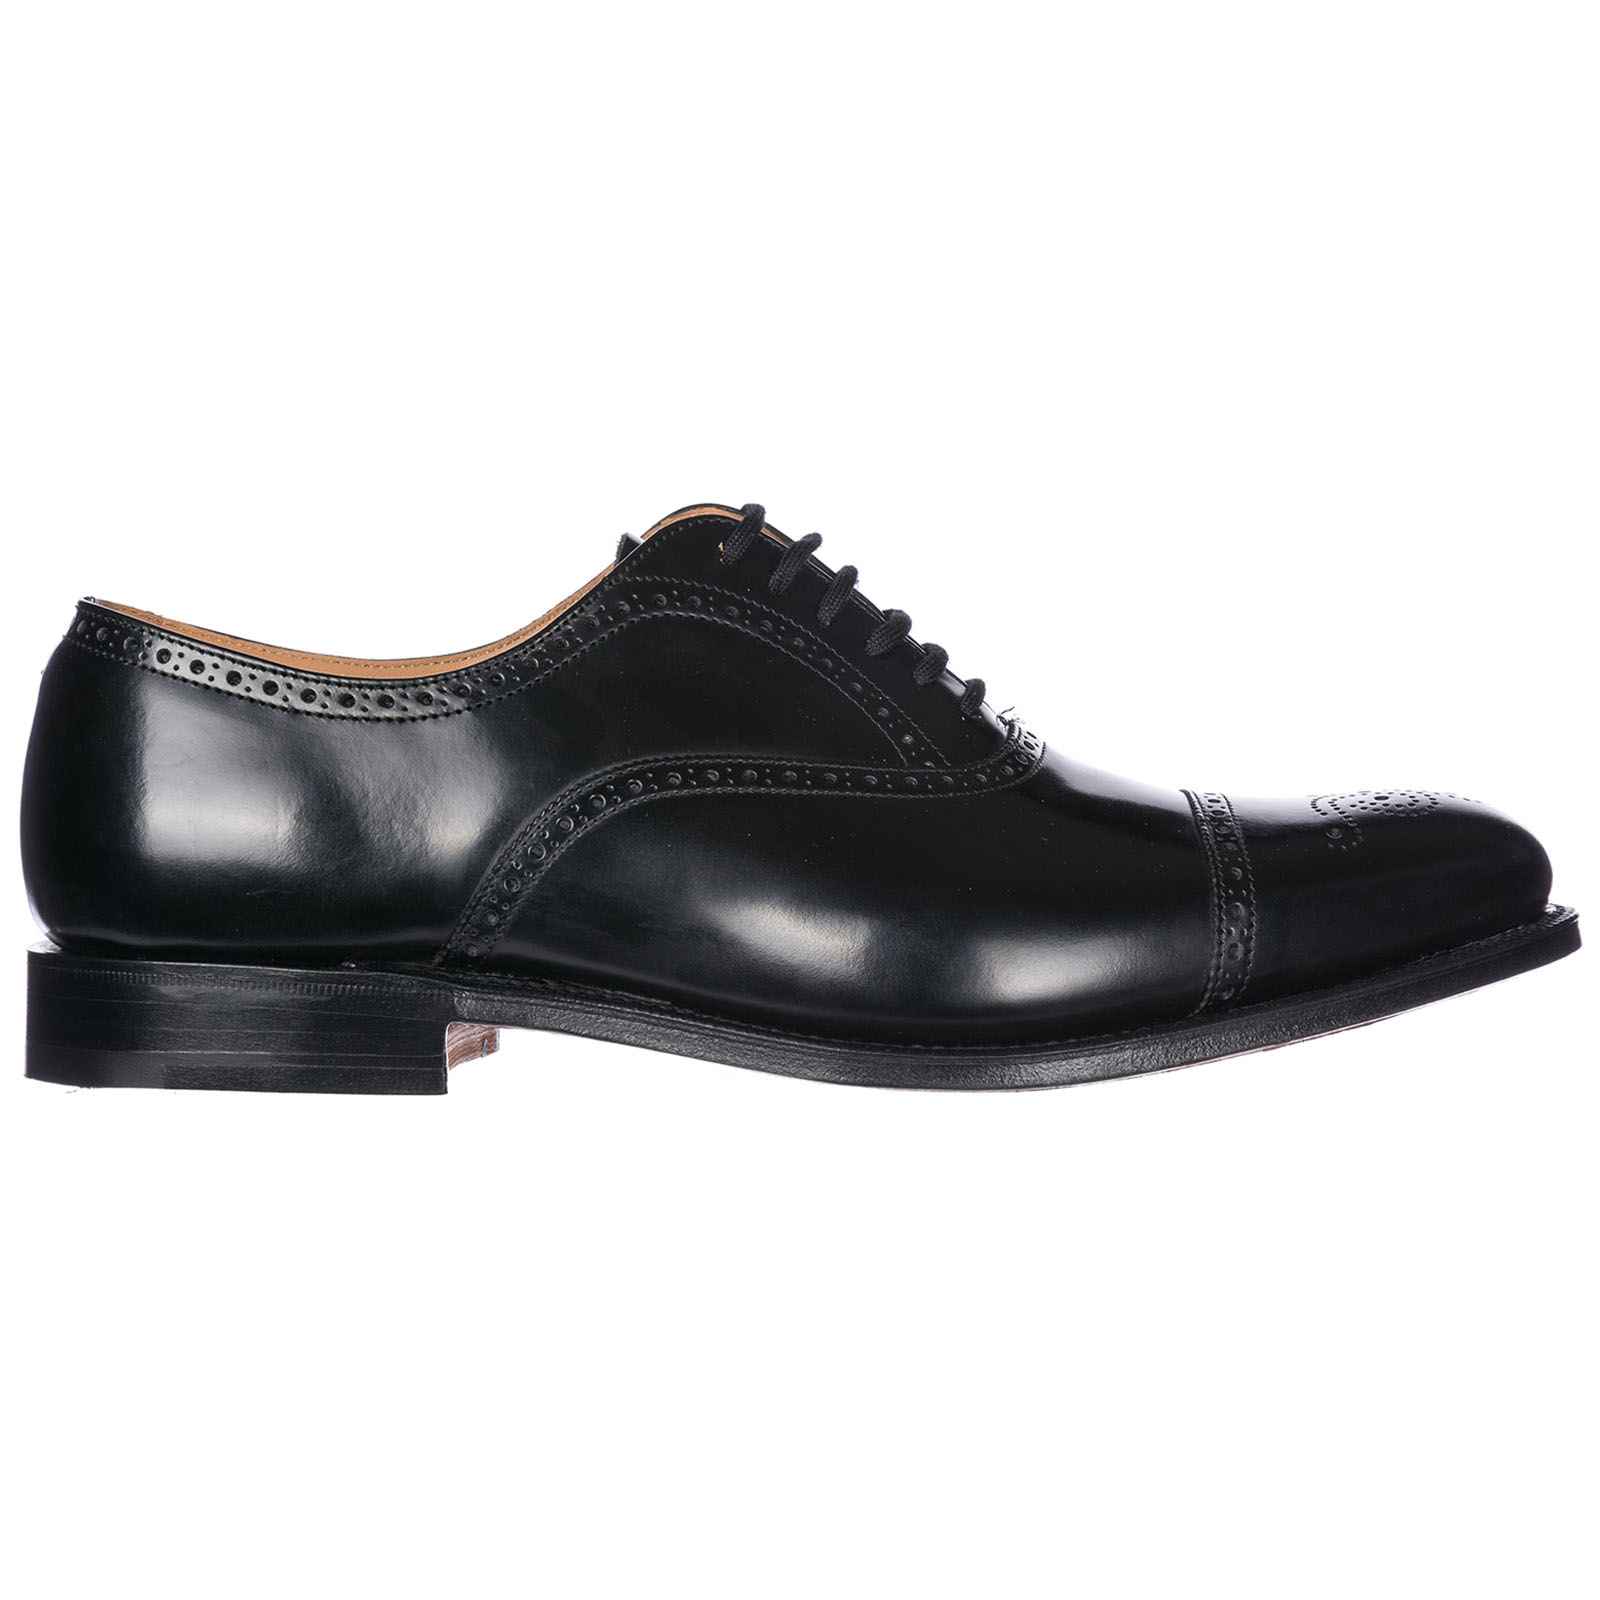 Men's classic leather lace up laced formal shoes tgoldnto brogue